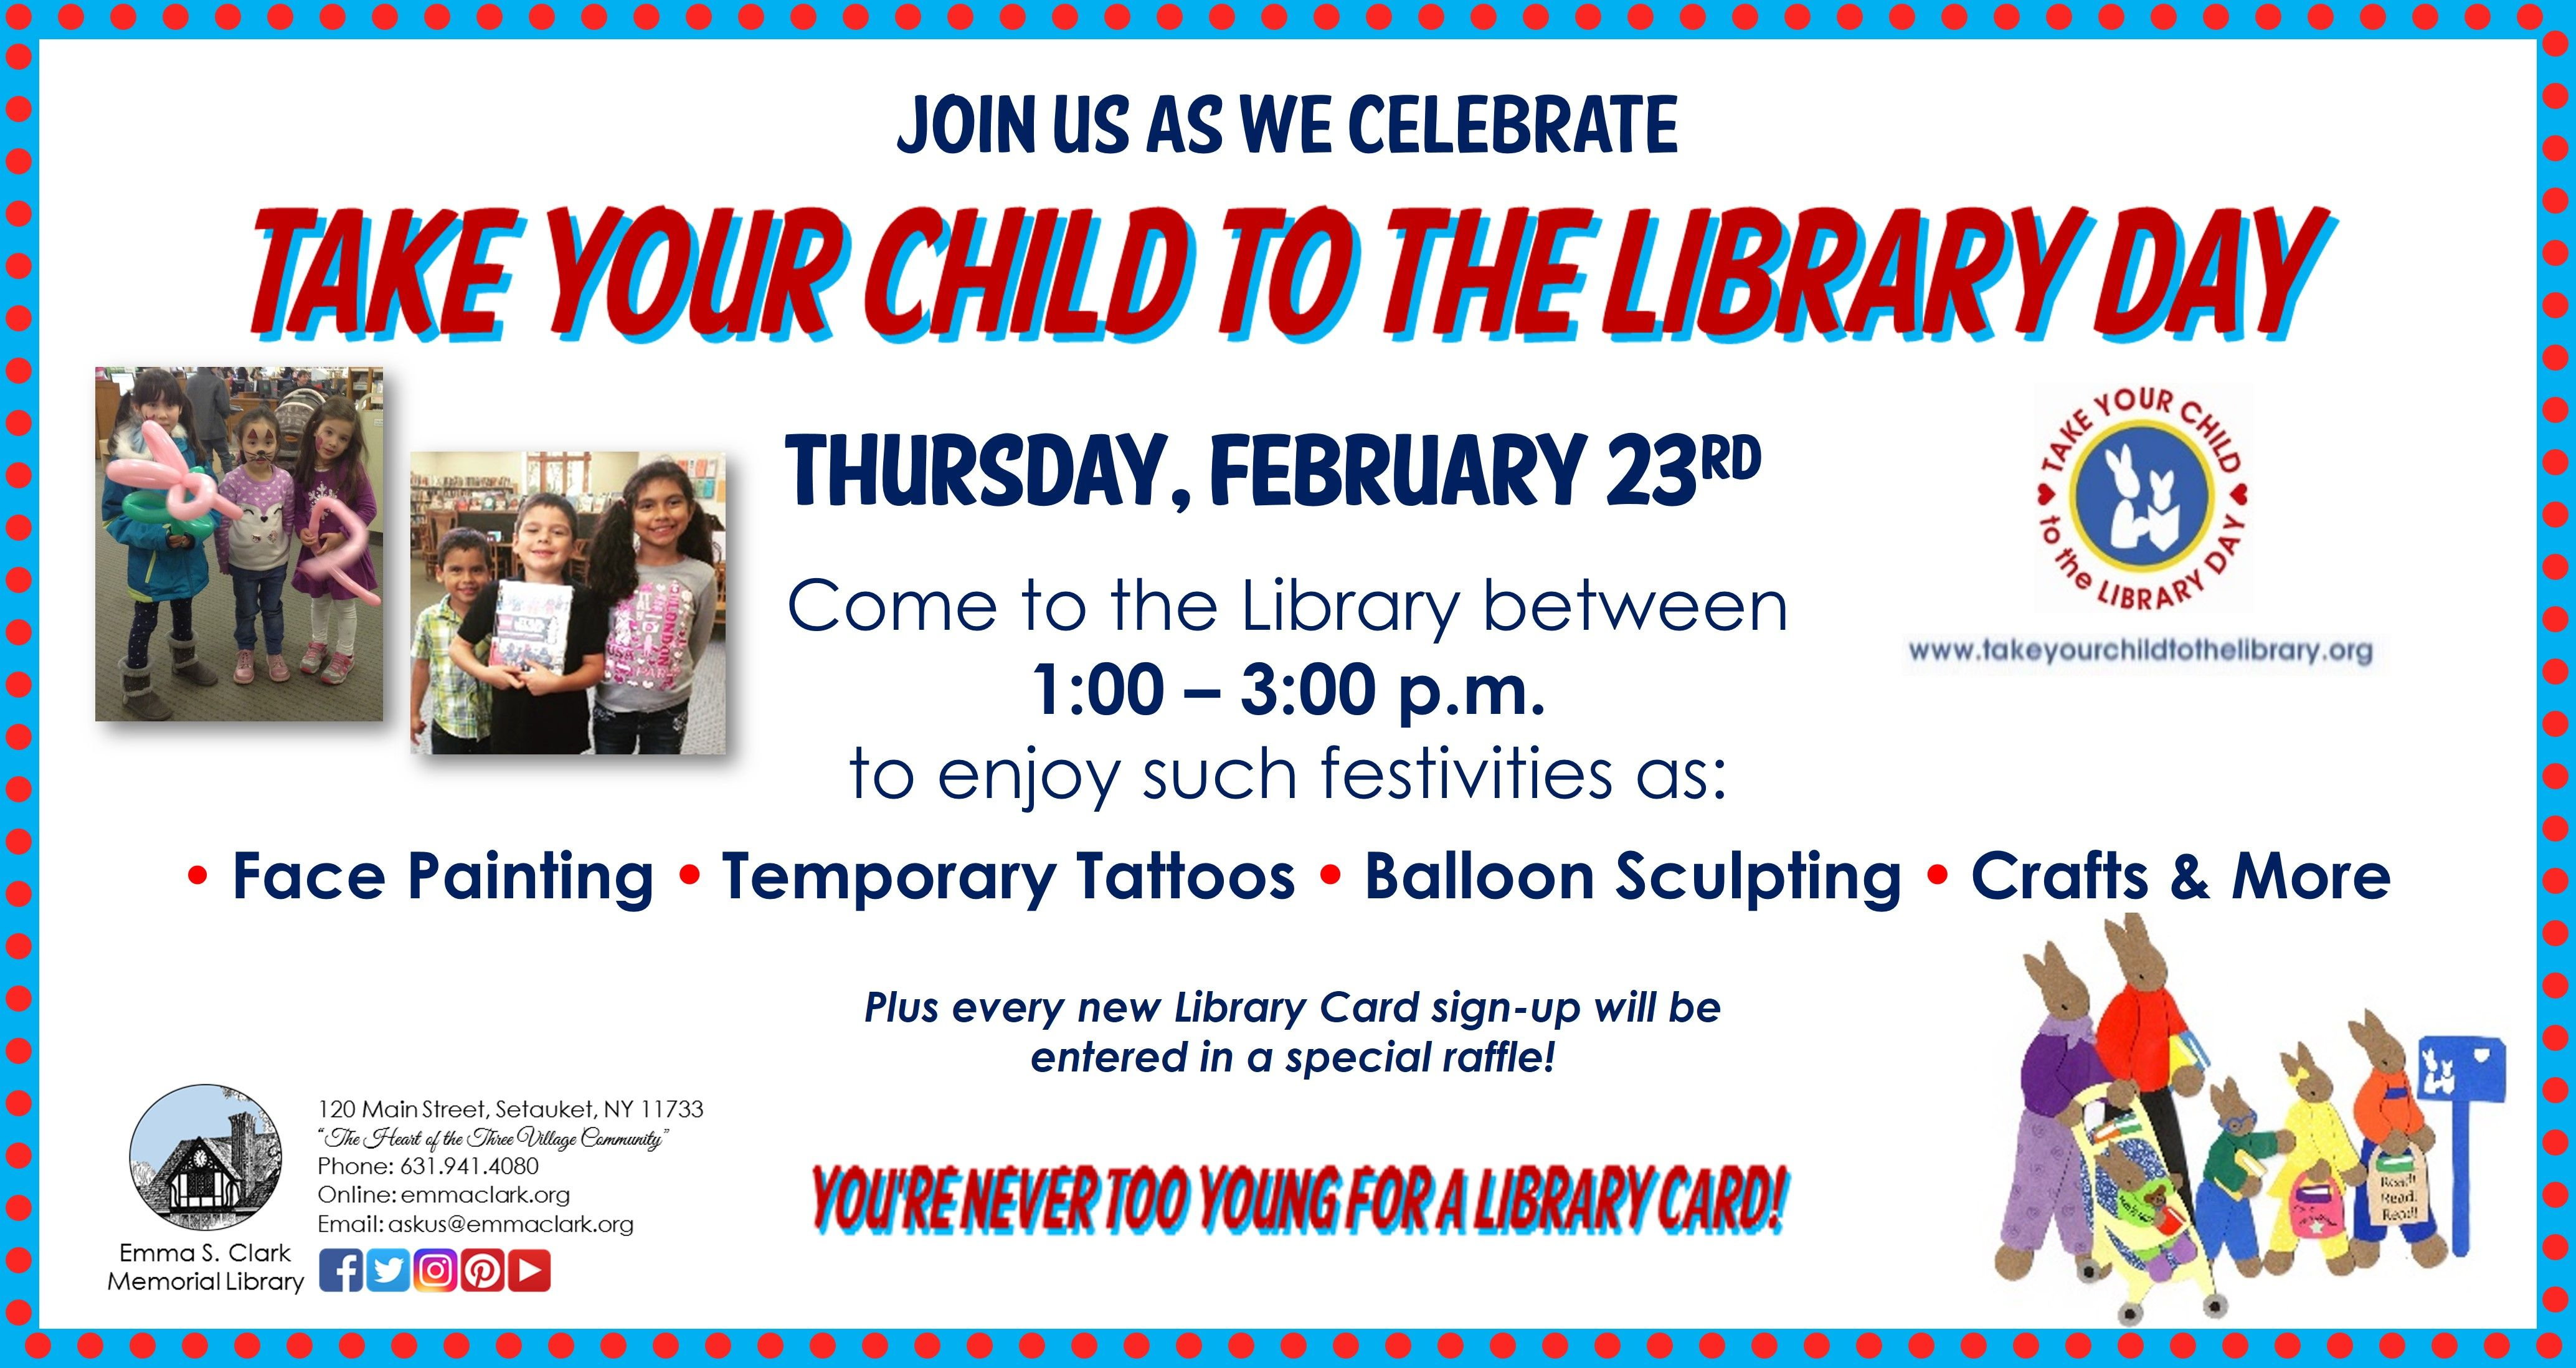 Mark Your Calendars! We're celebrating Take Your Child to the Library Day over Winter Break. All kids welcome. No need to register, so bring  friend.